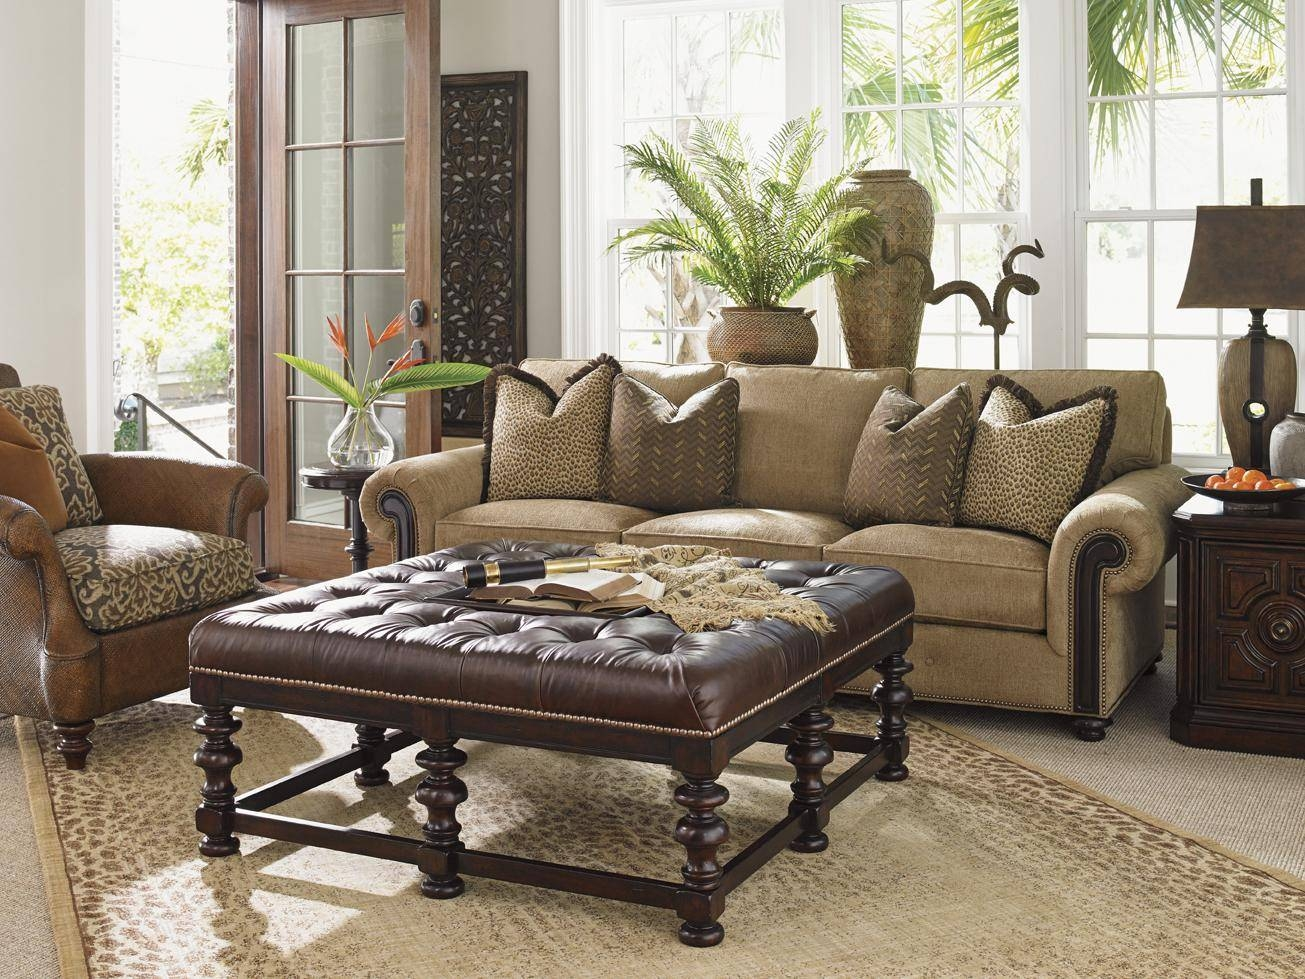 Tommy Bahama Home Kilimanjaro Heather Button Tufted Cocktail Intended For Animal Print Ottoman Coffee Tables (View 24 of 30)